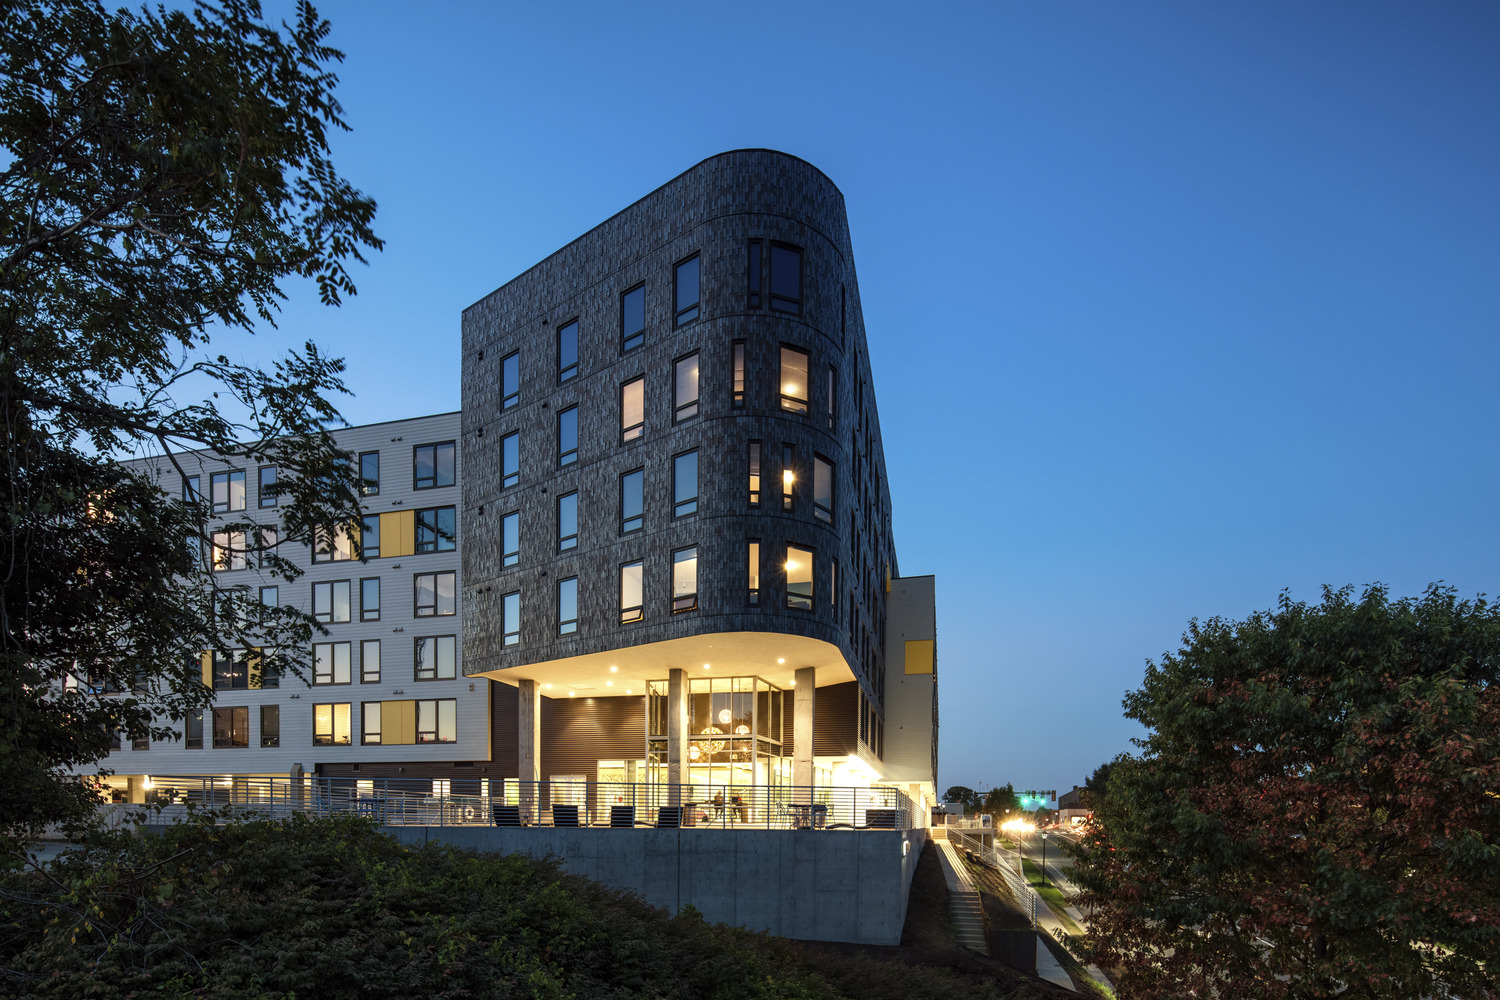 CBG builds Lark on Main, a 162-Unit, 342-Bed Student Housing Community with Retail and Underground Garage in Charlottesville, VA - Image #1